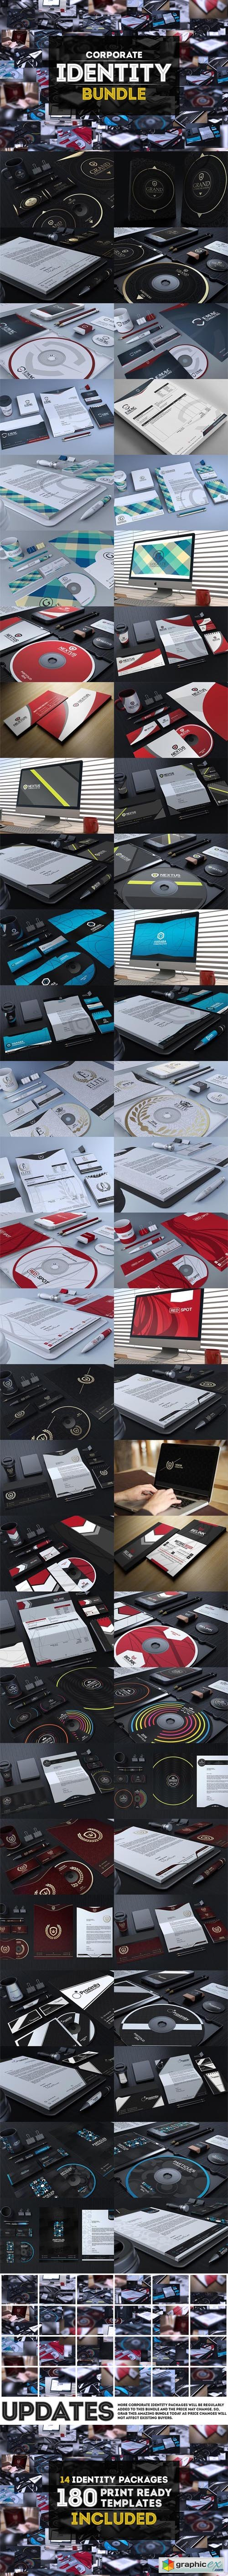 Corporate Identity Bundle +180 Files